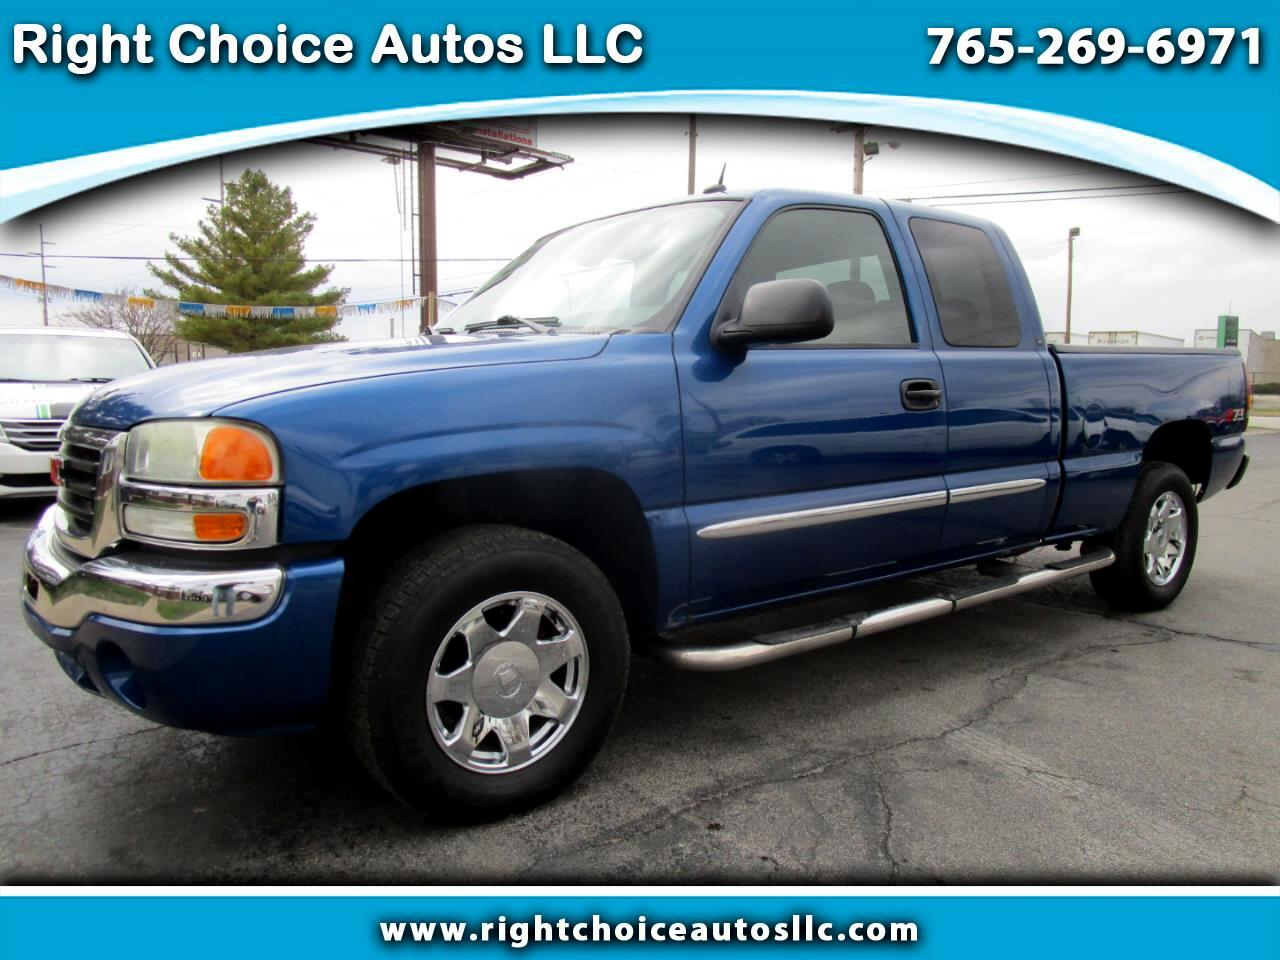 2004 GMC Sierra 1500 SLE Ext. Cab Short Bed 4WD